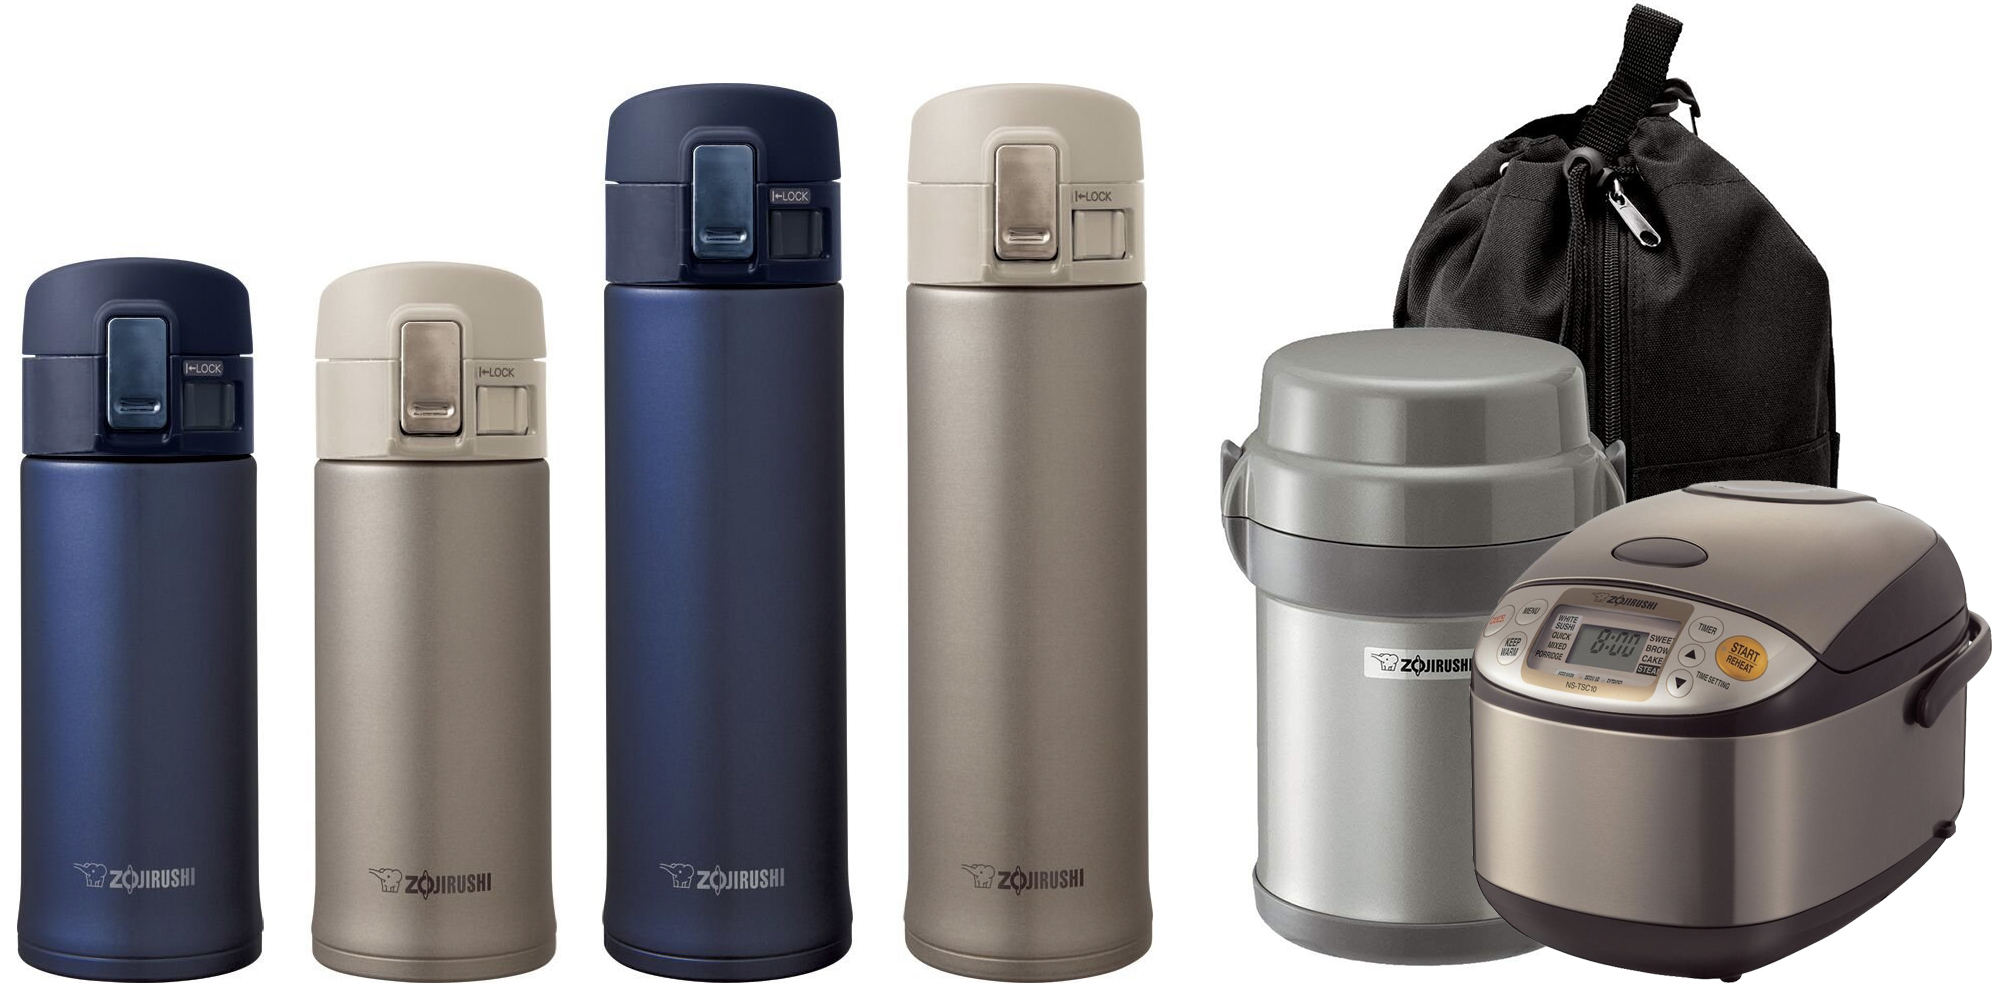 Top Rated Travel Mugs Rice Cookers And More Abound In